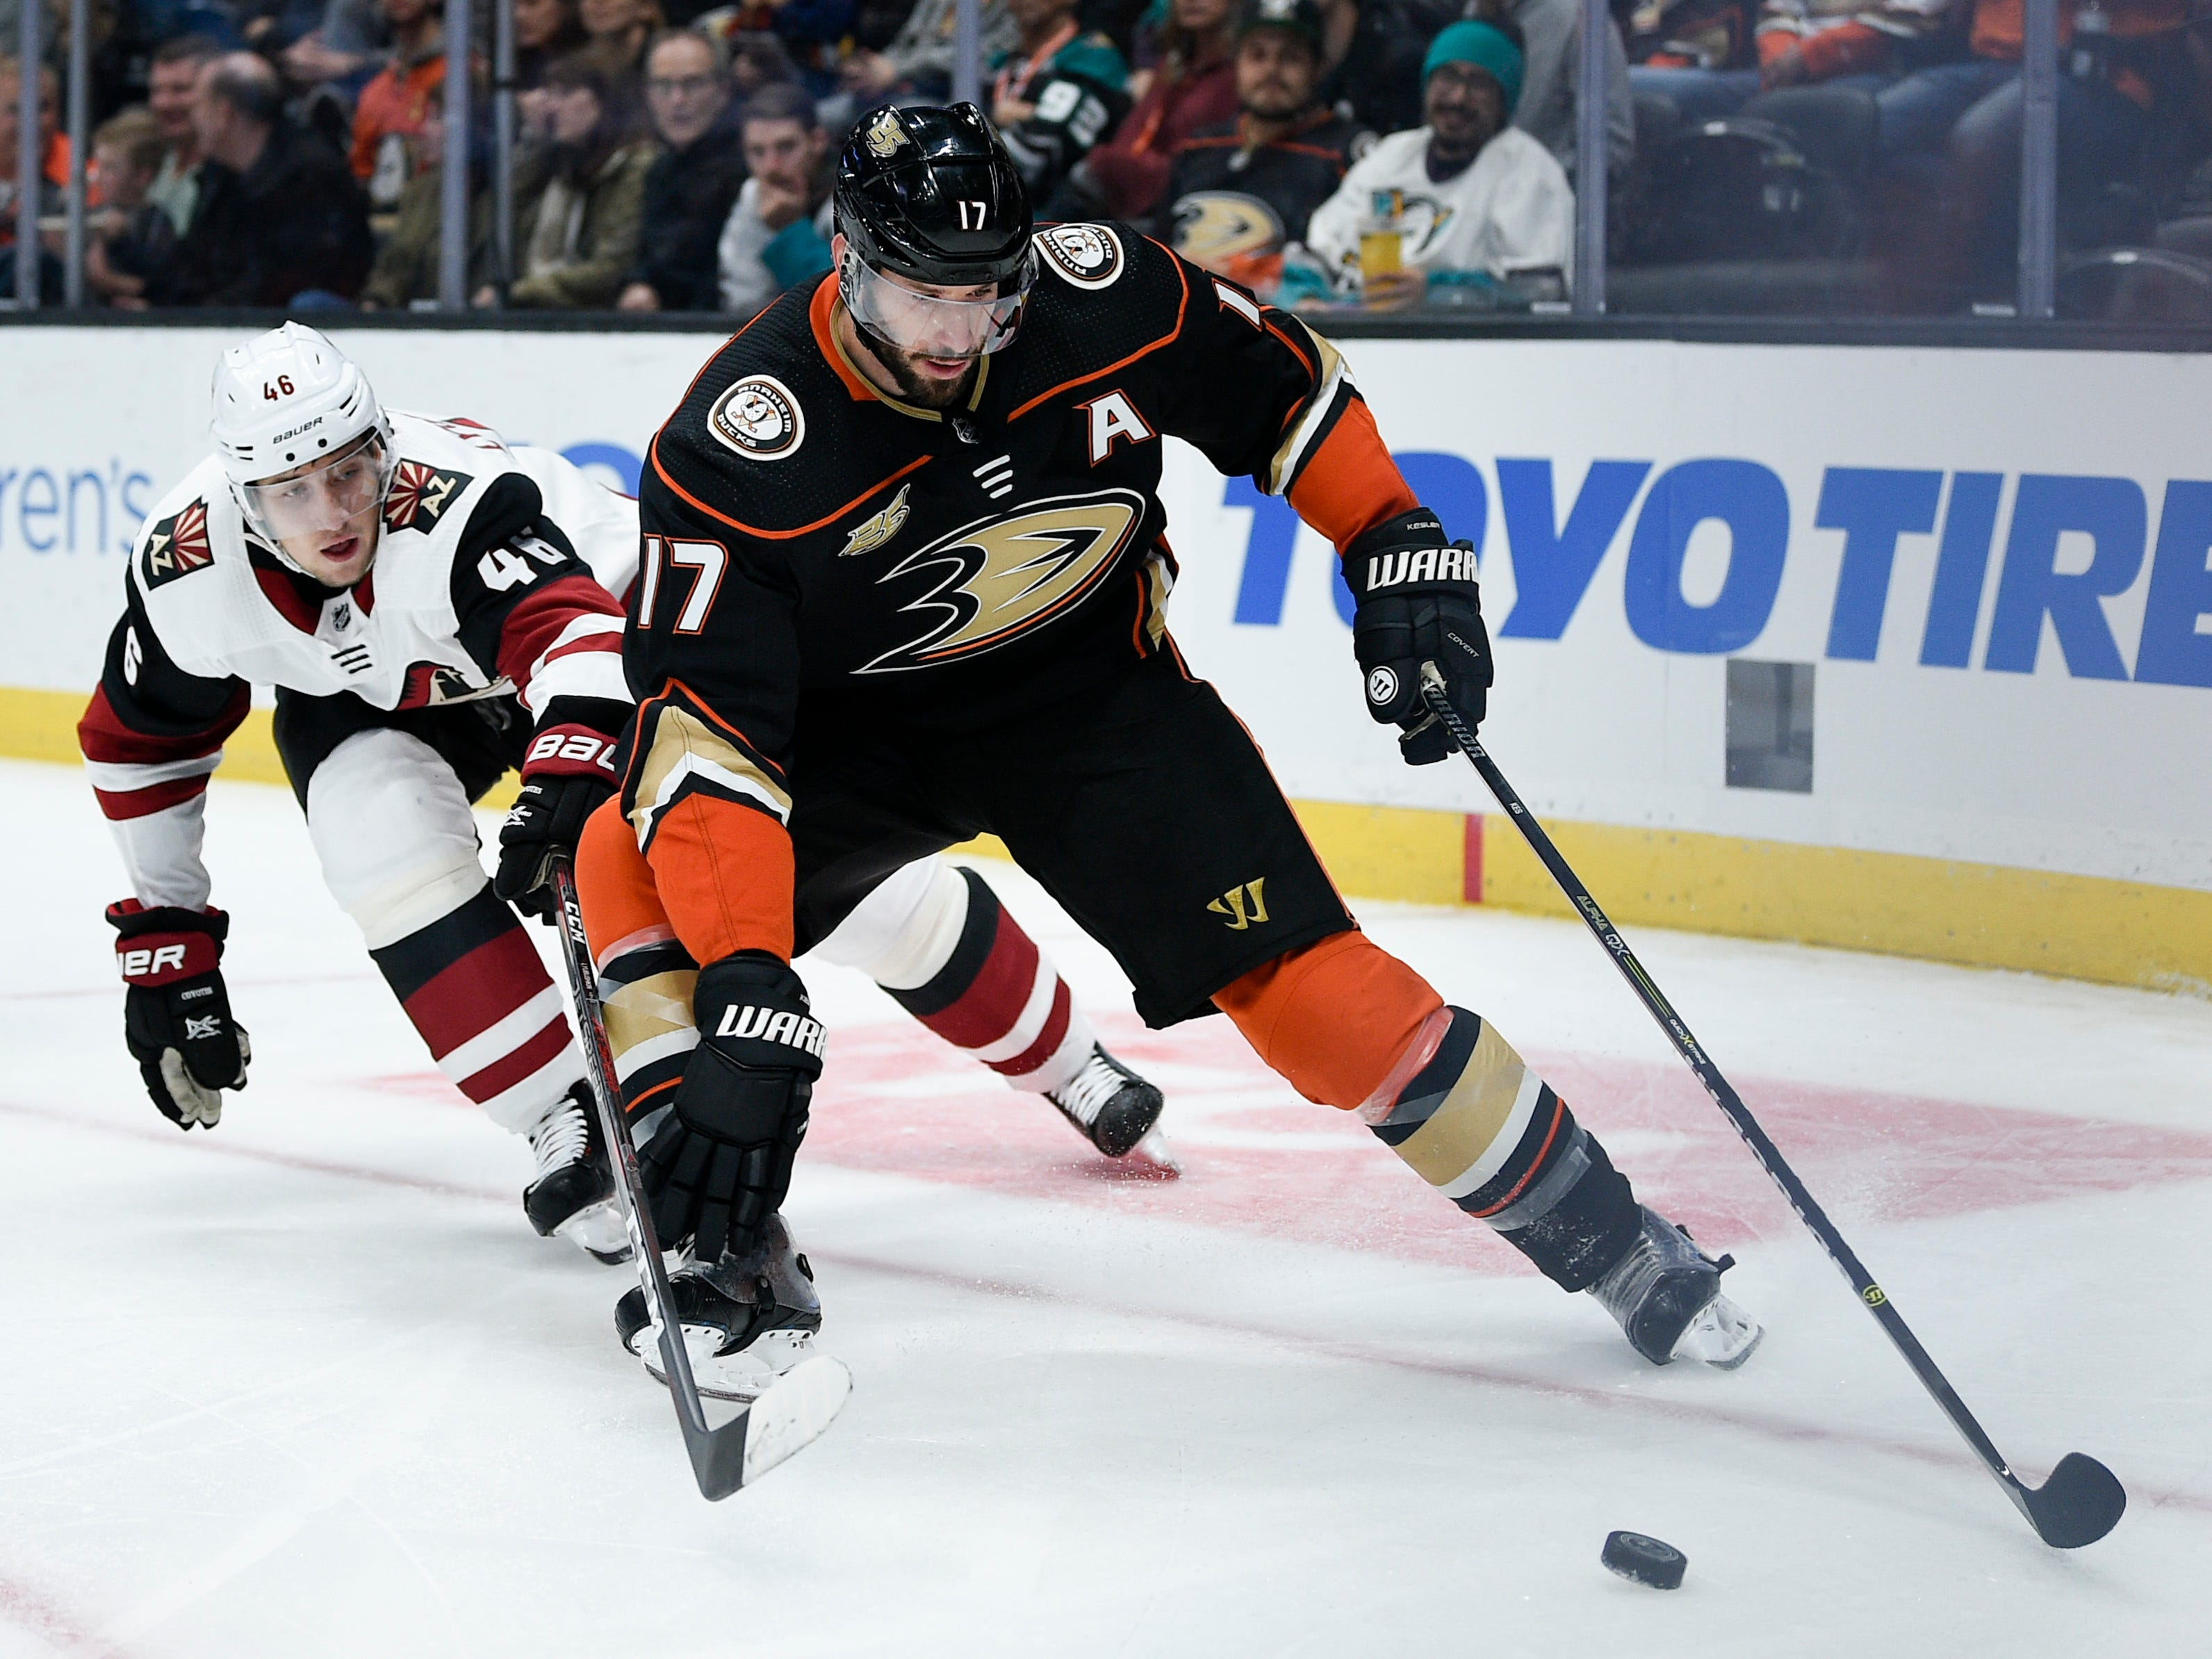 Oct 10, 2018; Anaheim, CA, USA; Anaheim Ducks center Ryan Kesler (17) handles the puck while under pressure by Arizona Coyotes defenseman Trevor Murphy (46) during the second period at Honda Center.